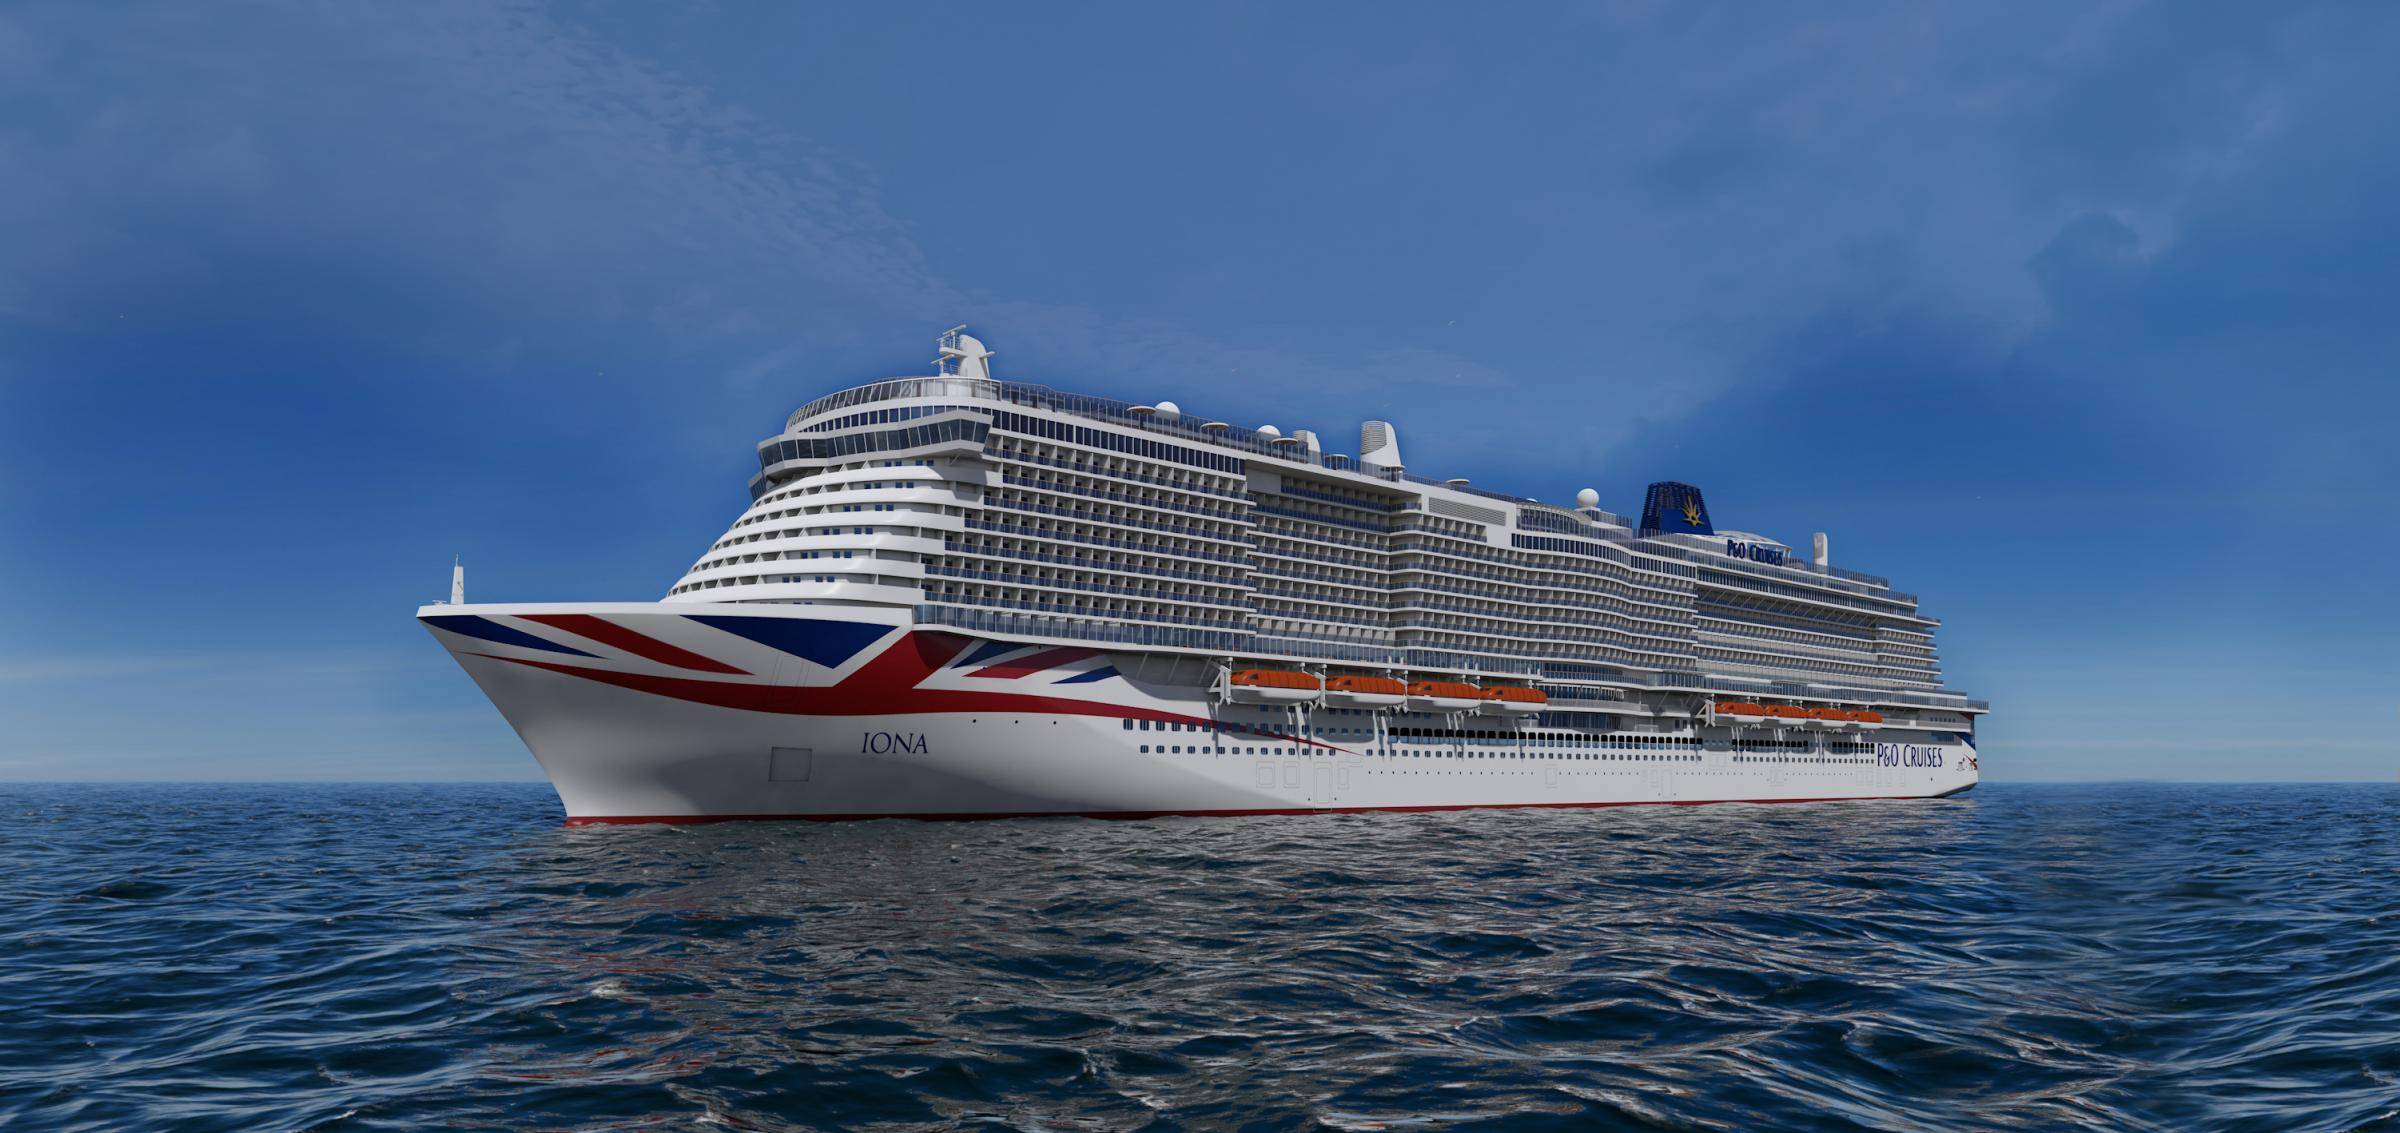 CGI of P&O's Iona, which is due to come into service in 2020.